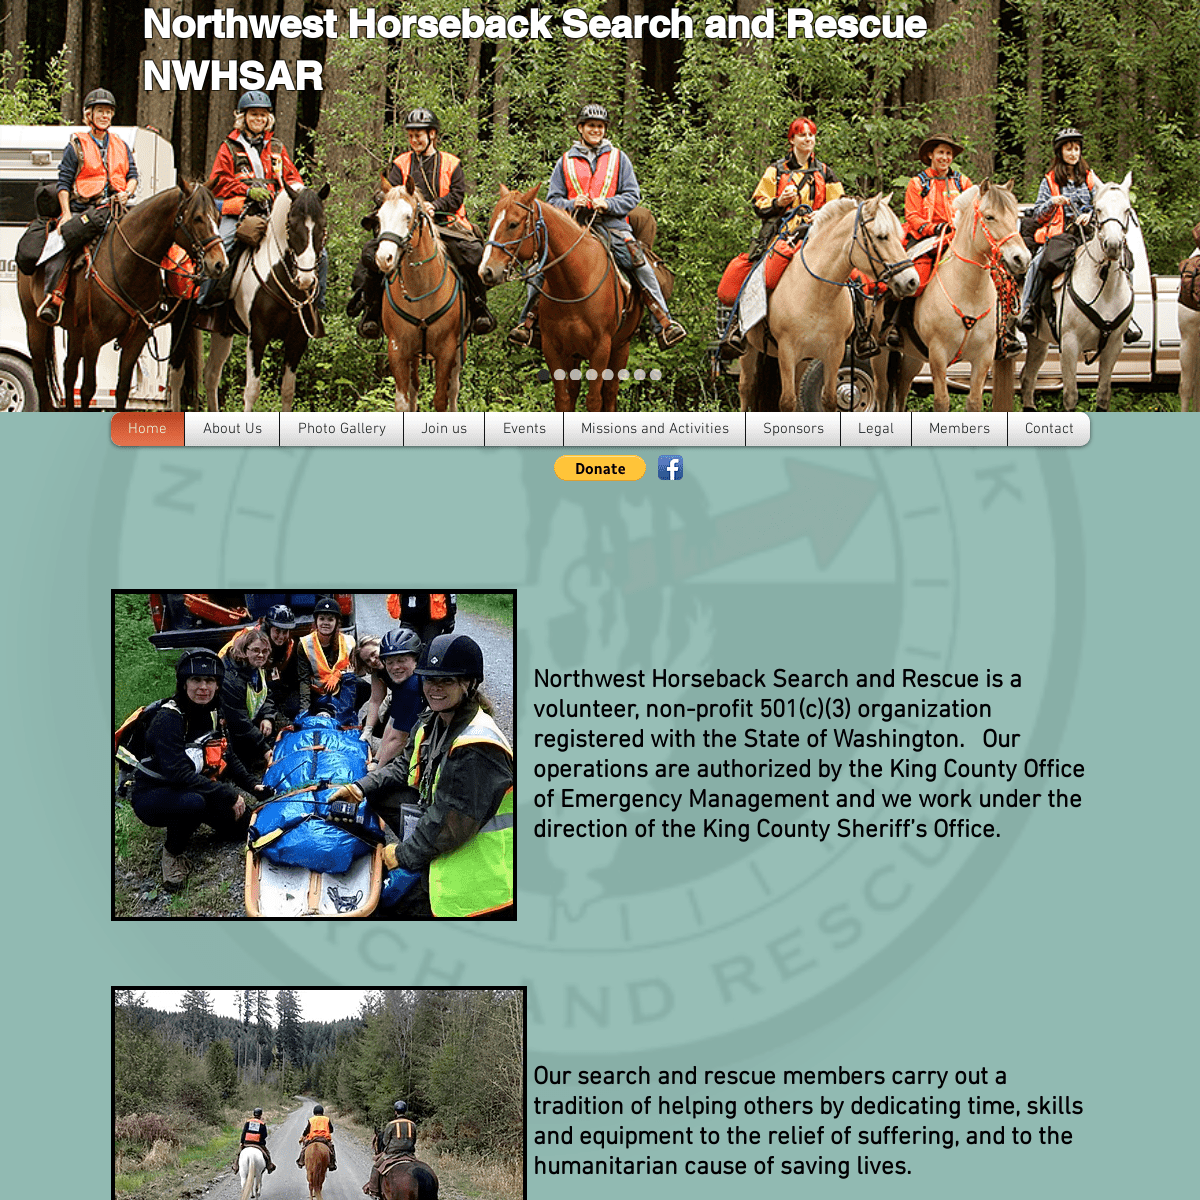 NORTHWEST HORSEBACK SEARCH AND RESCUE - Home